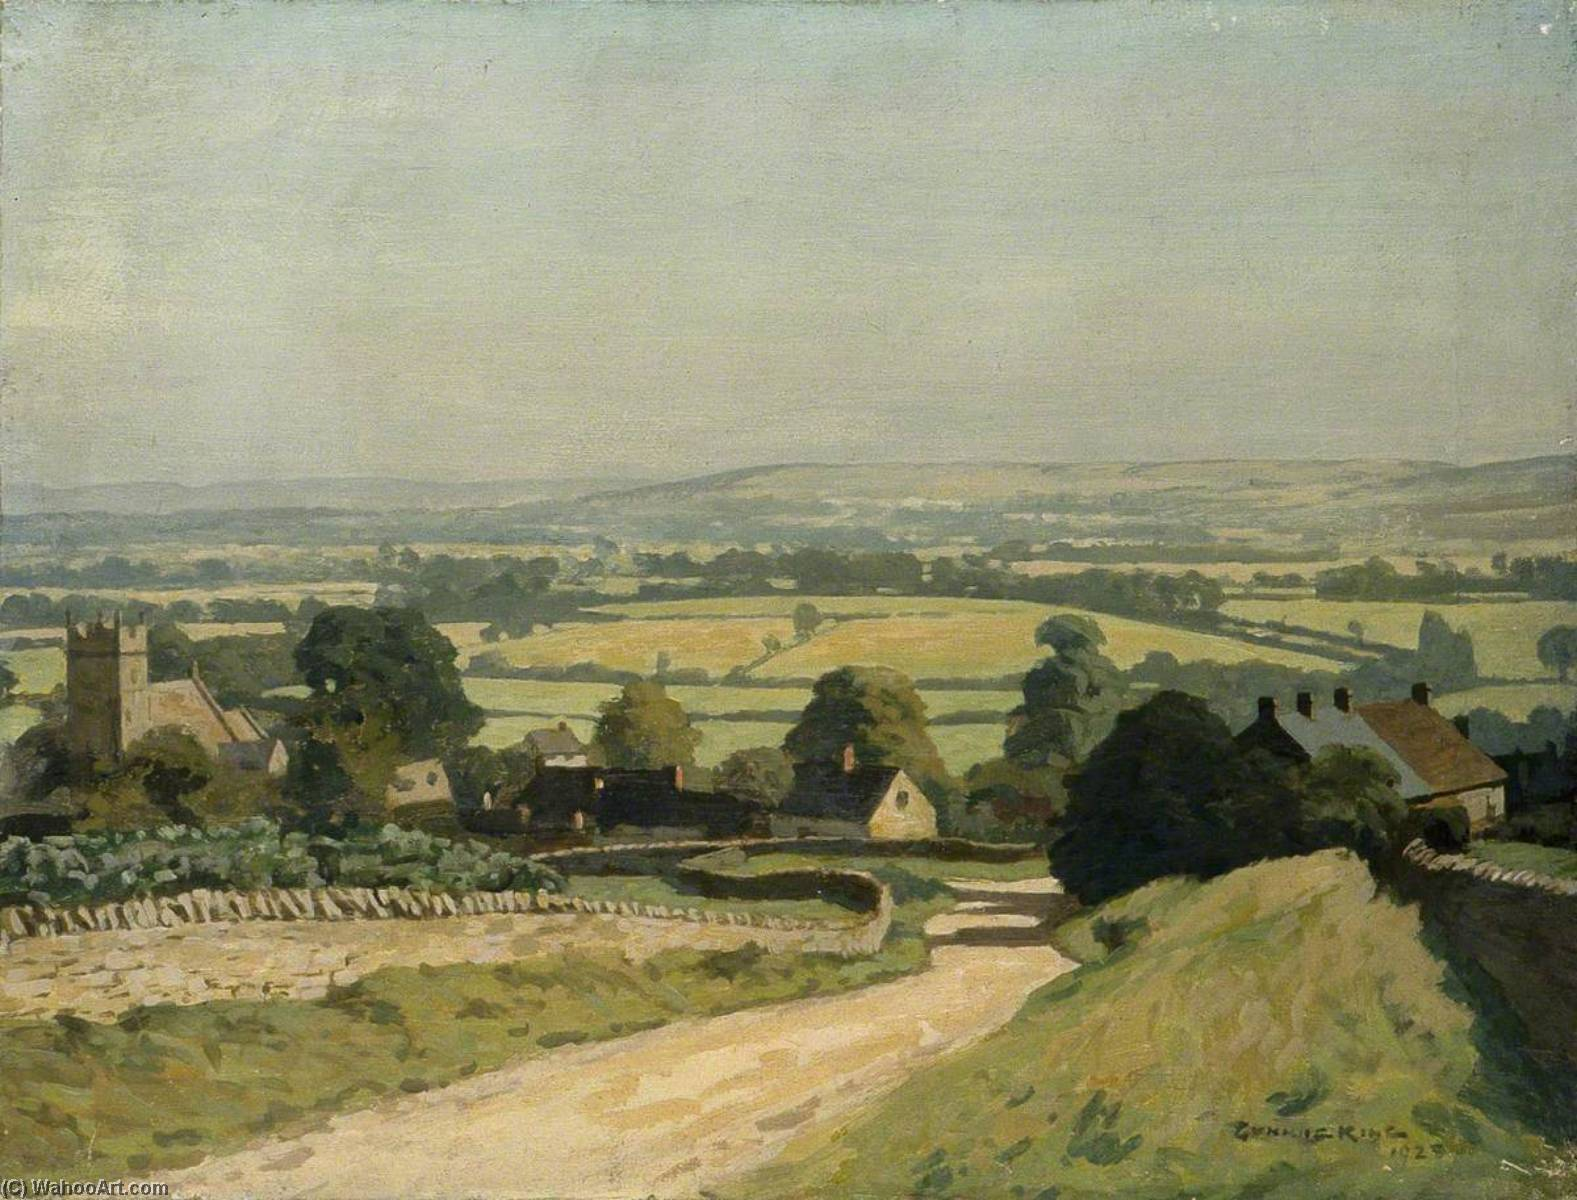 Cotswold Country (II), 1928 by Gunning King | Famous Paintings Reproductions | WahooArt.com